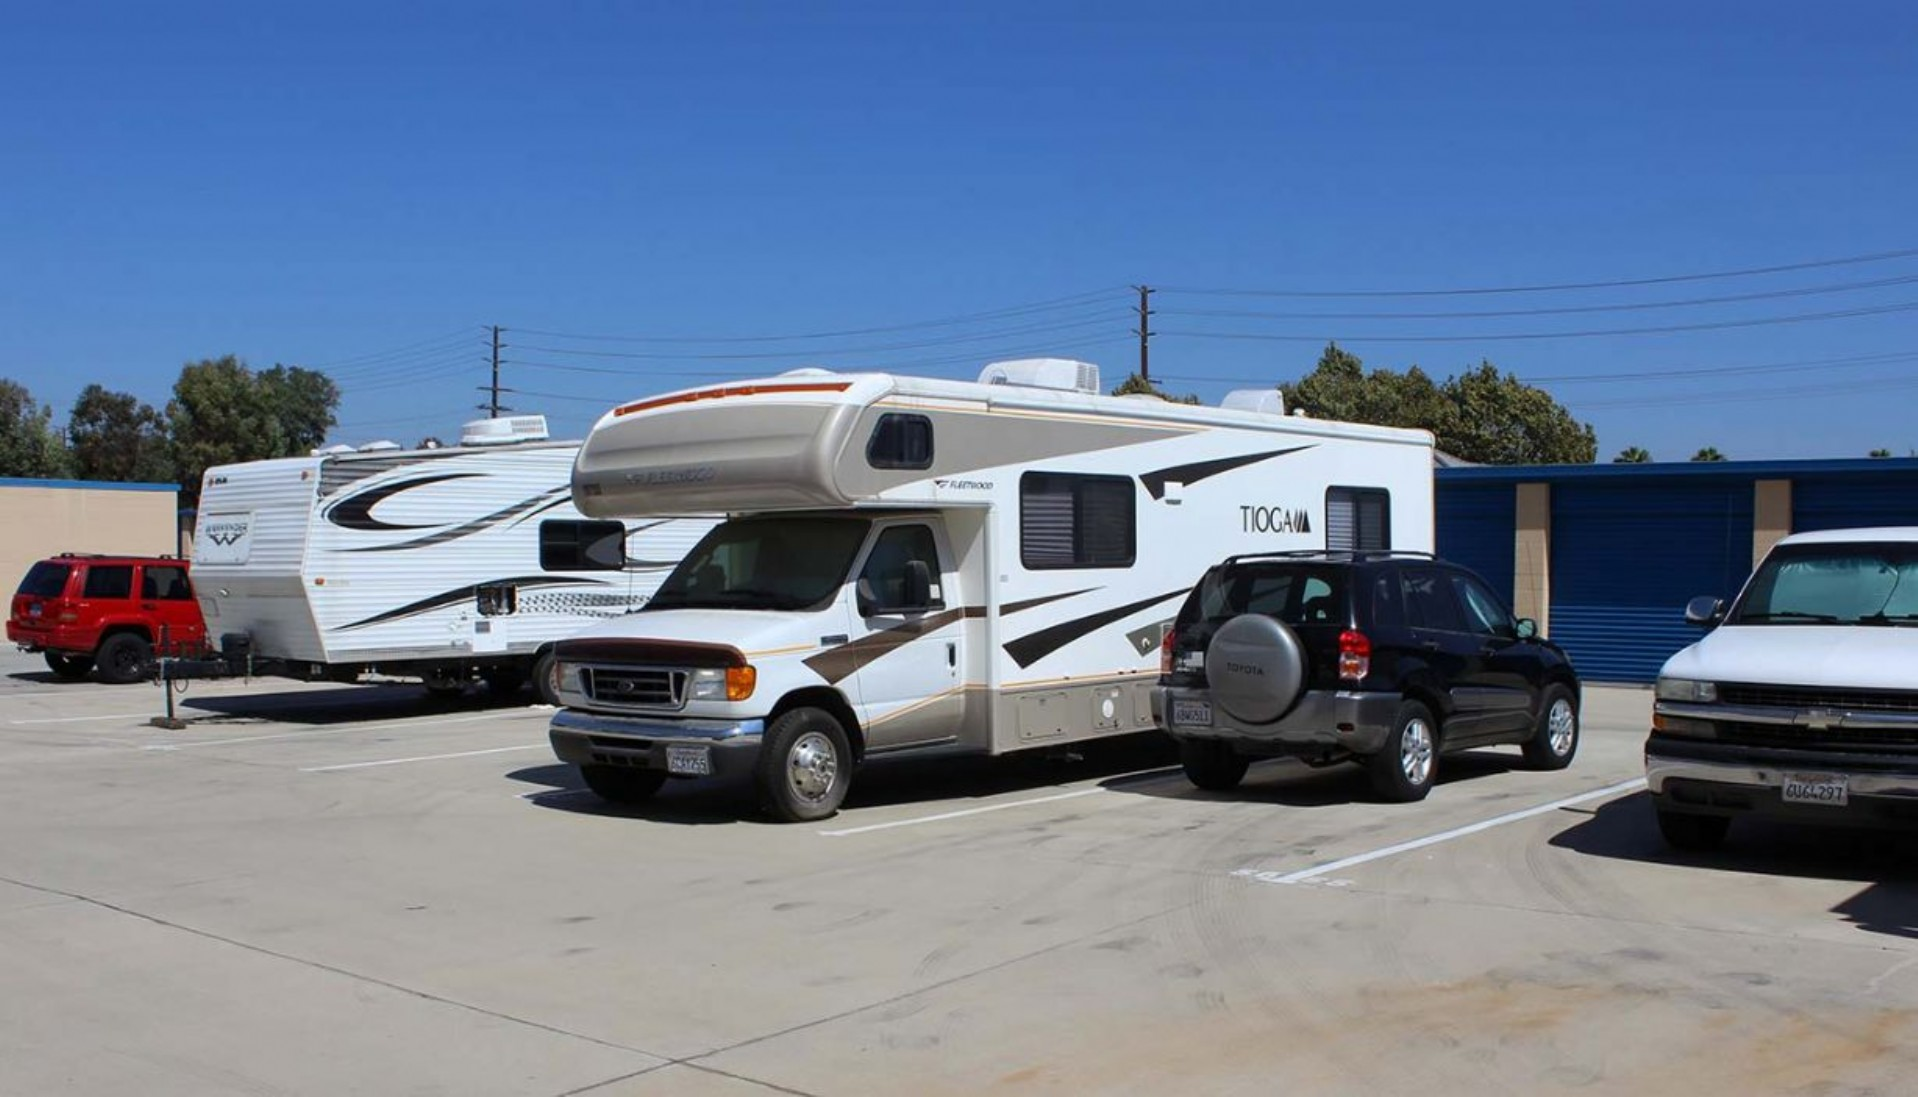 RV and SUV parked in vehicle storage parking spaces